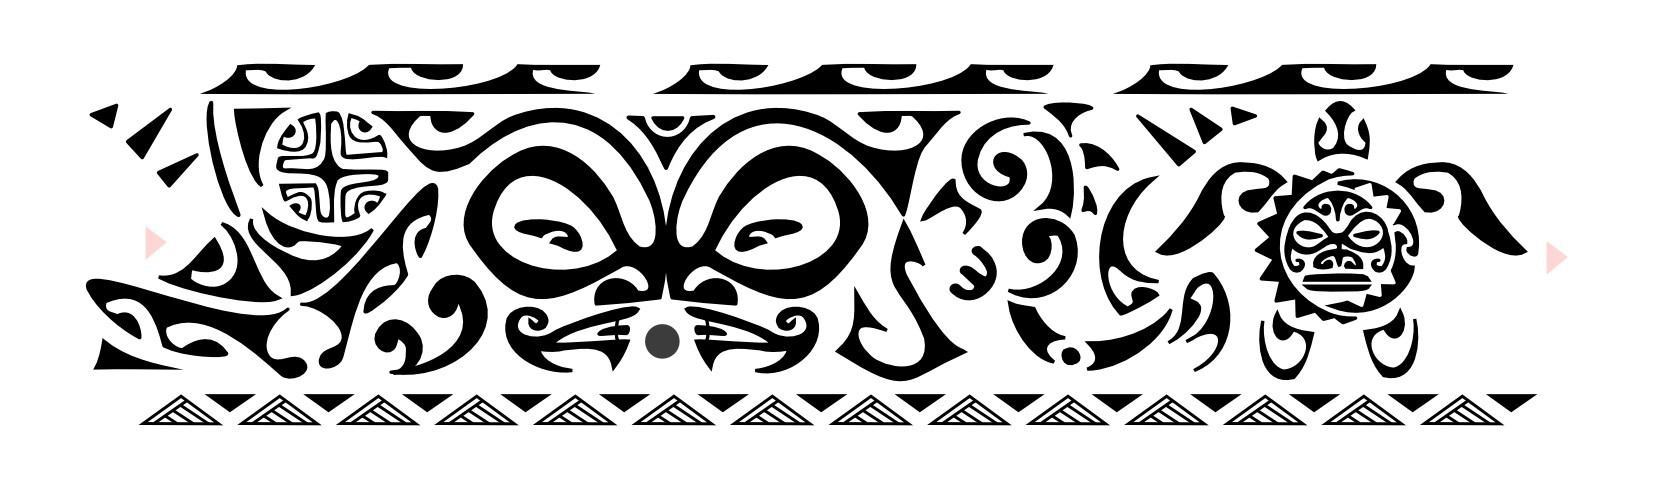 Polynesian Ankle Band Tattoo Design